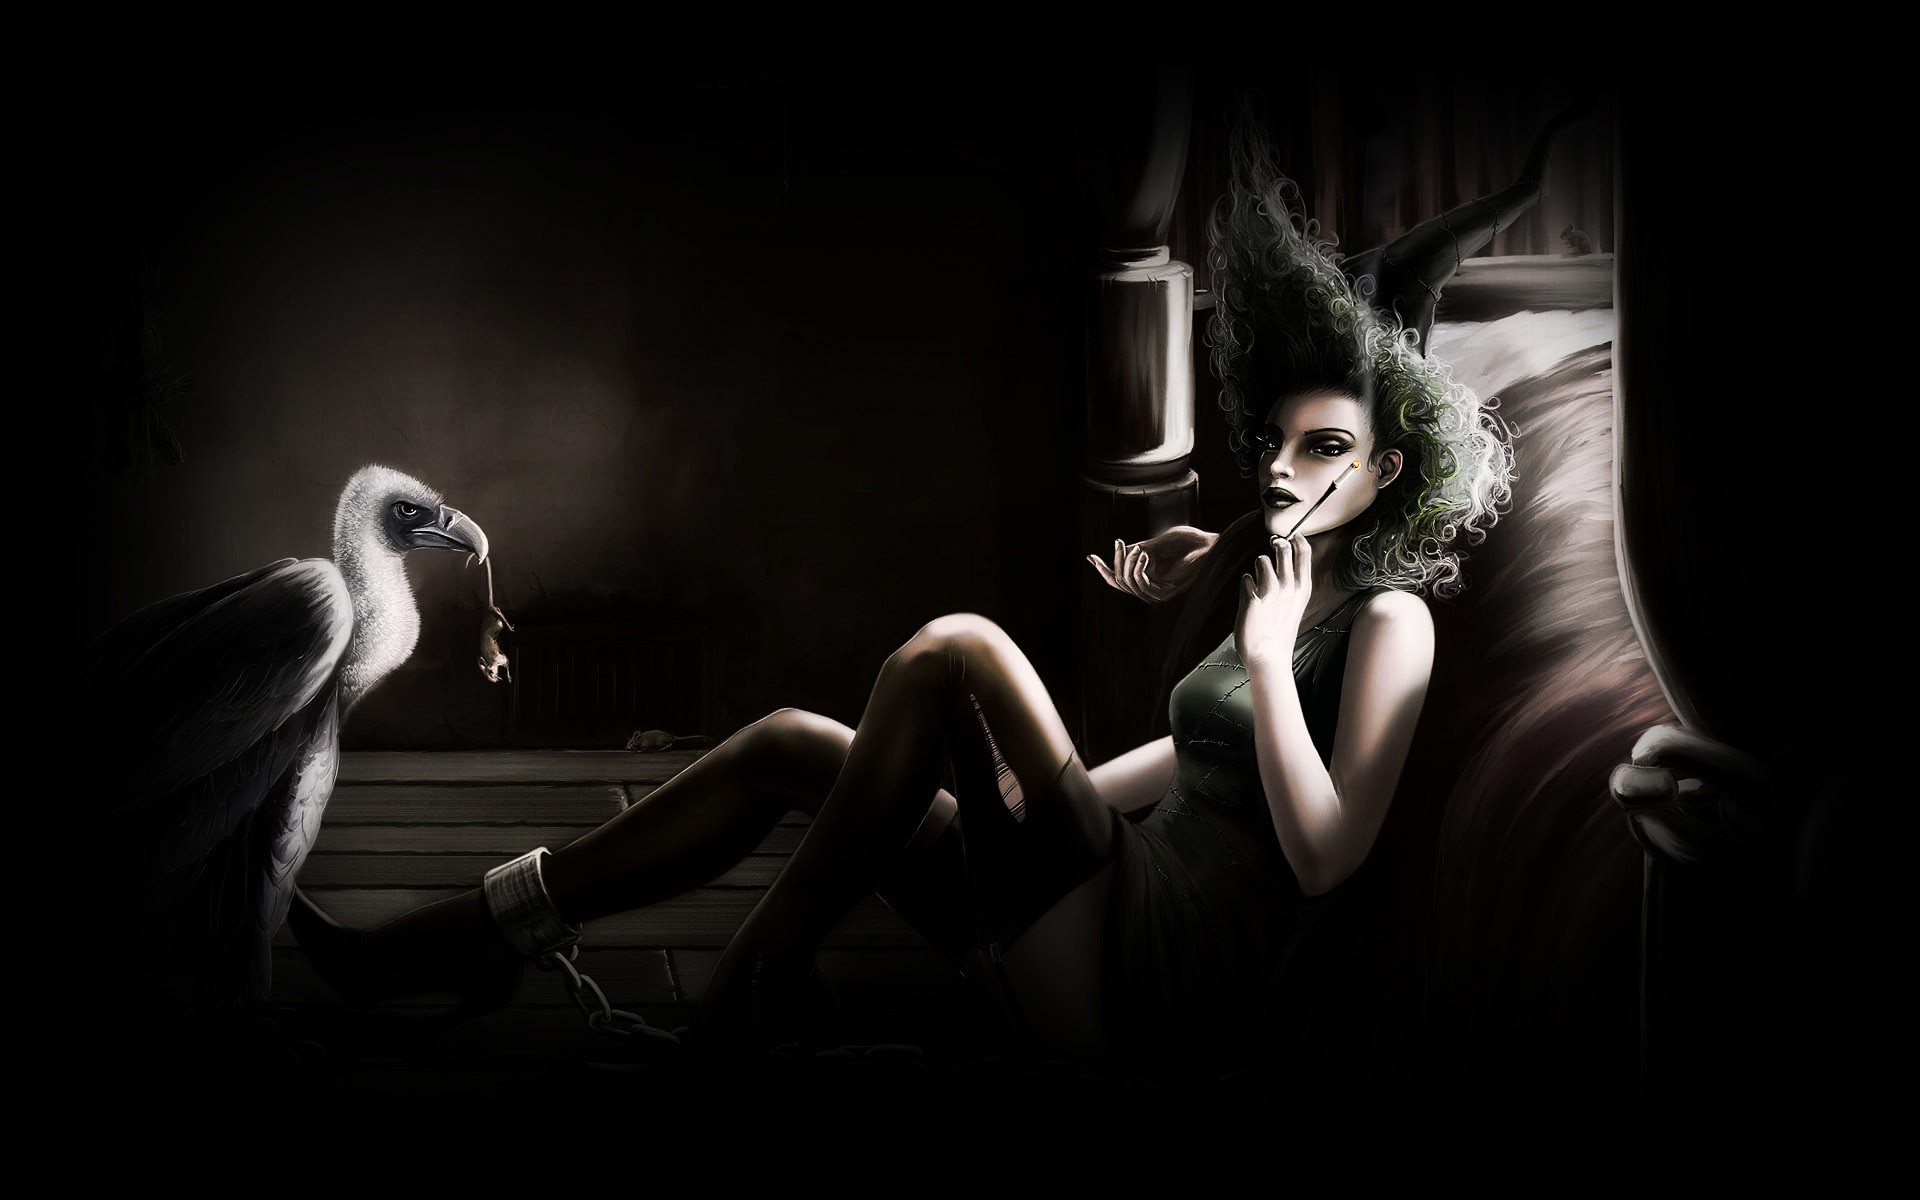 Res: 1920x1200, ... Cigarette Smoke Art; Smoking girl beside the bed